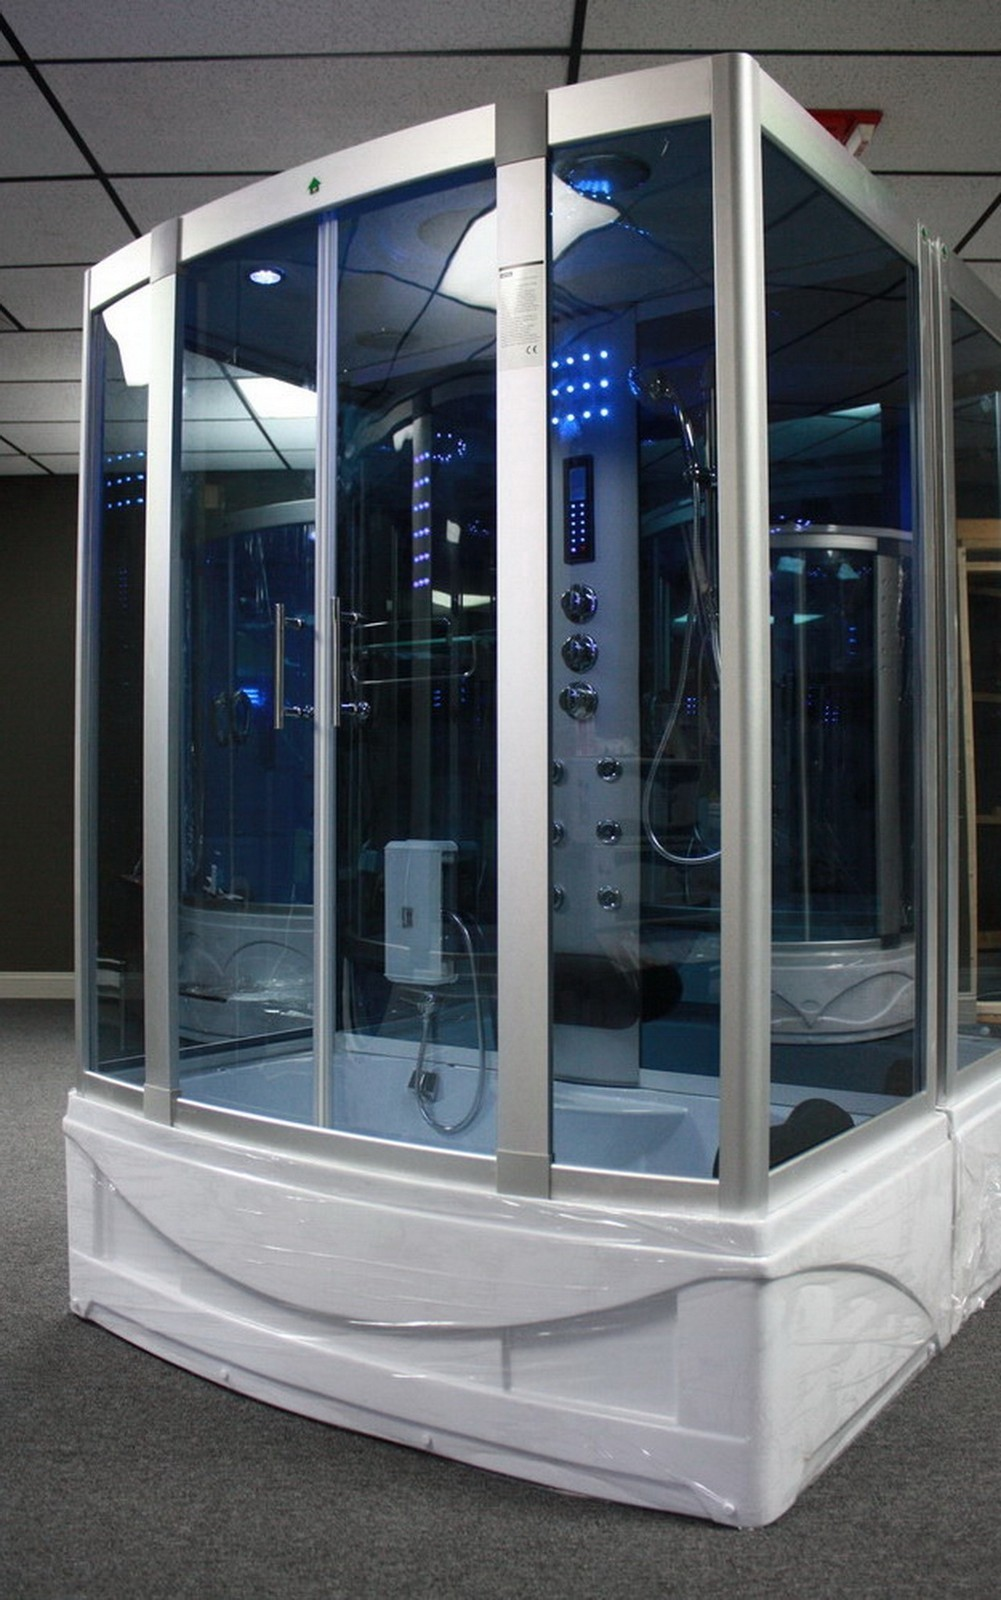 Steam Shower Room With deep Whirlpool Tub,BLUETOOTH. 9001 - Image 1